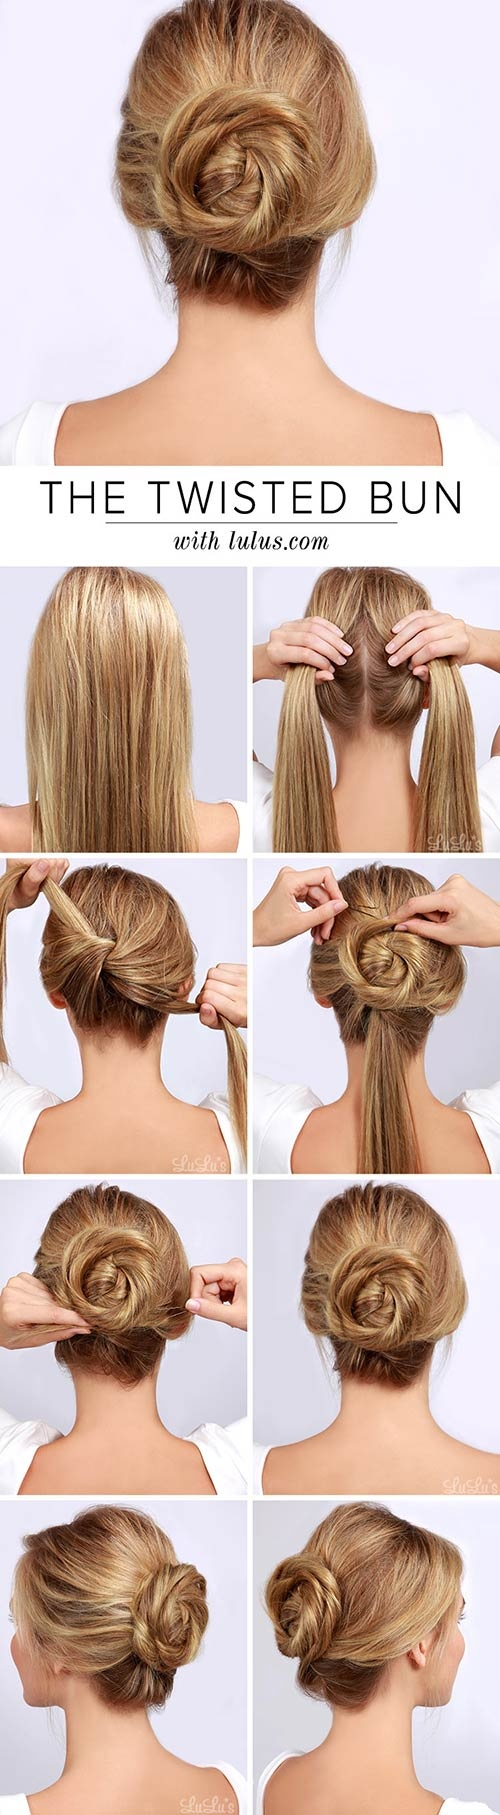 what are some good hairstyles for girls? - quora